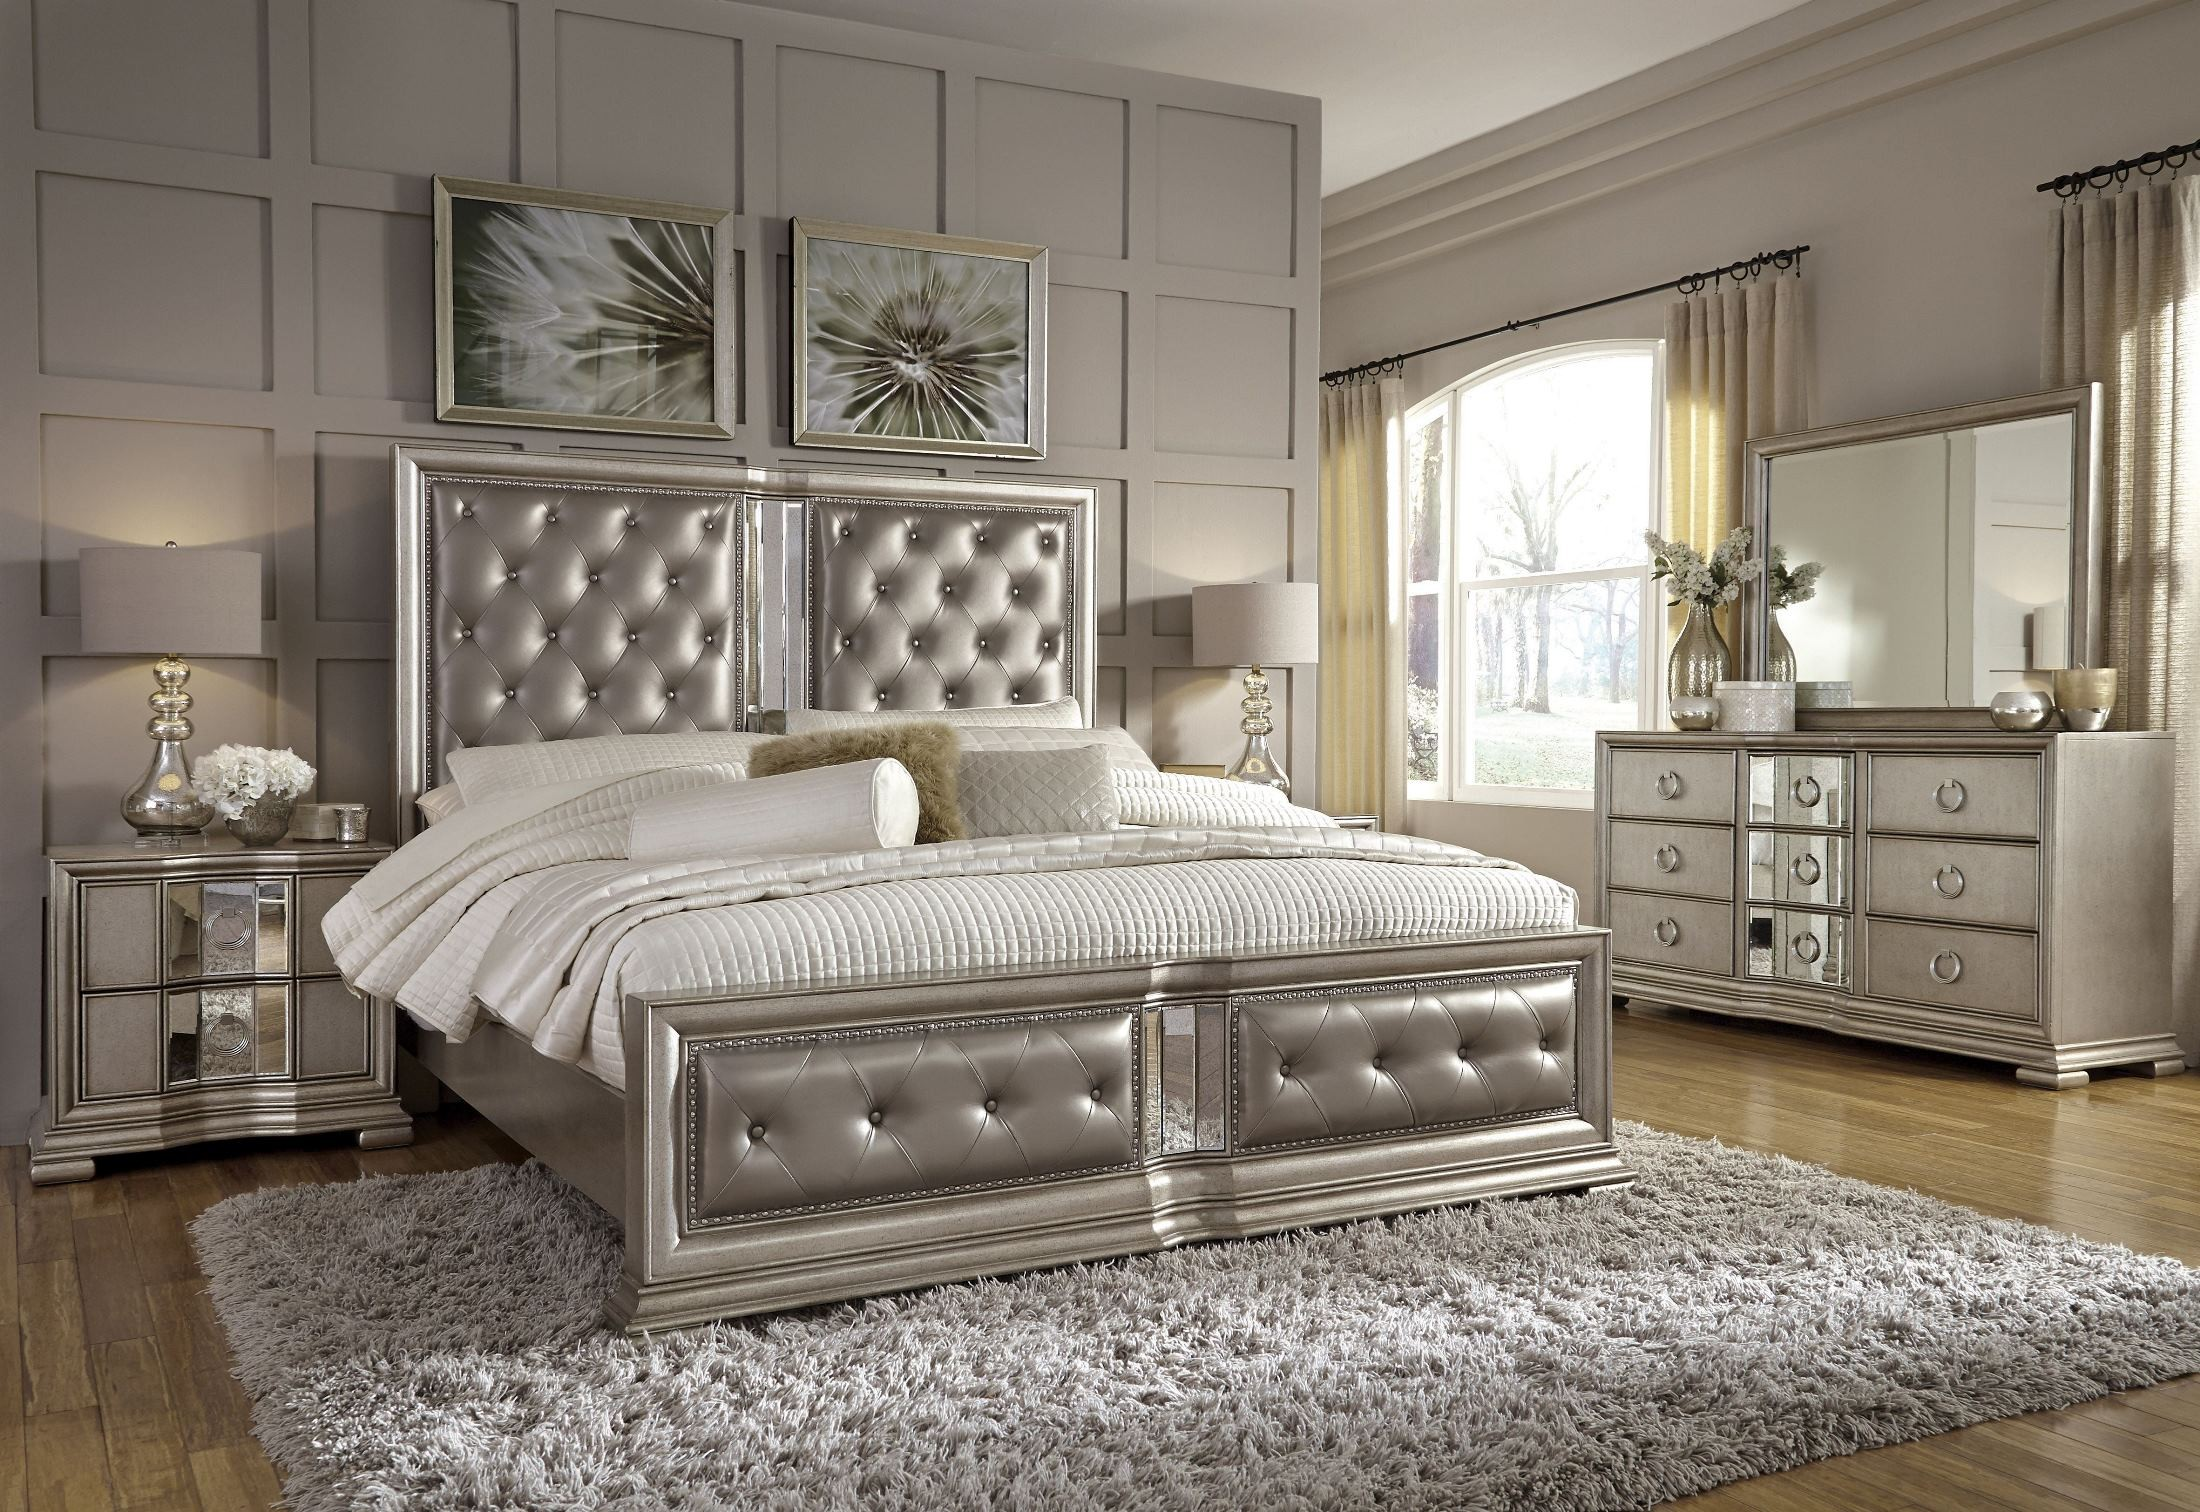 pulaski bedroom set couture silver panel bedroom set from pulaski coleman 12947